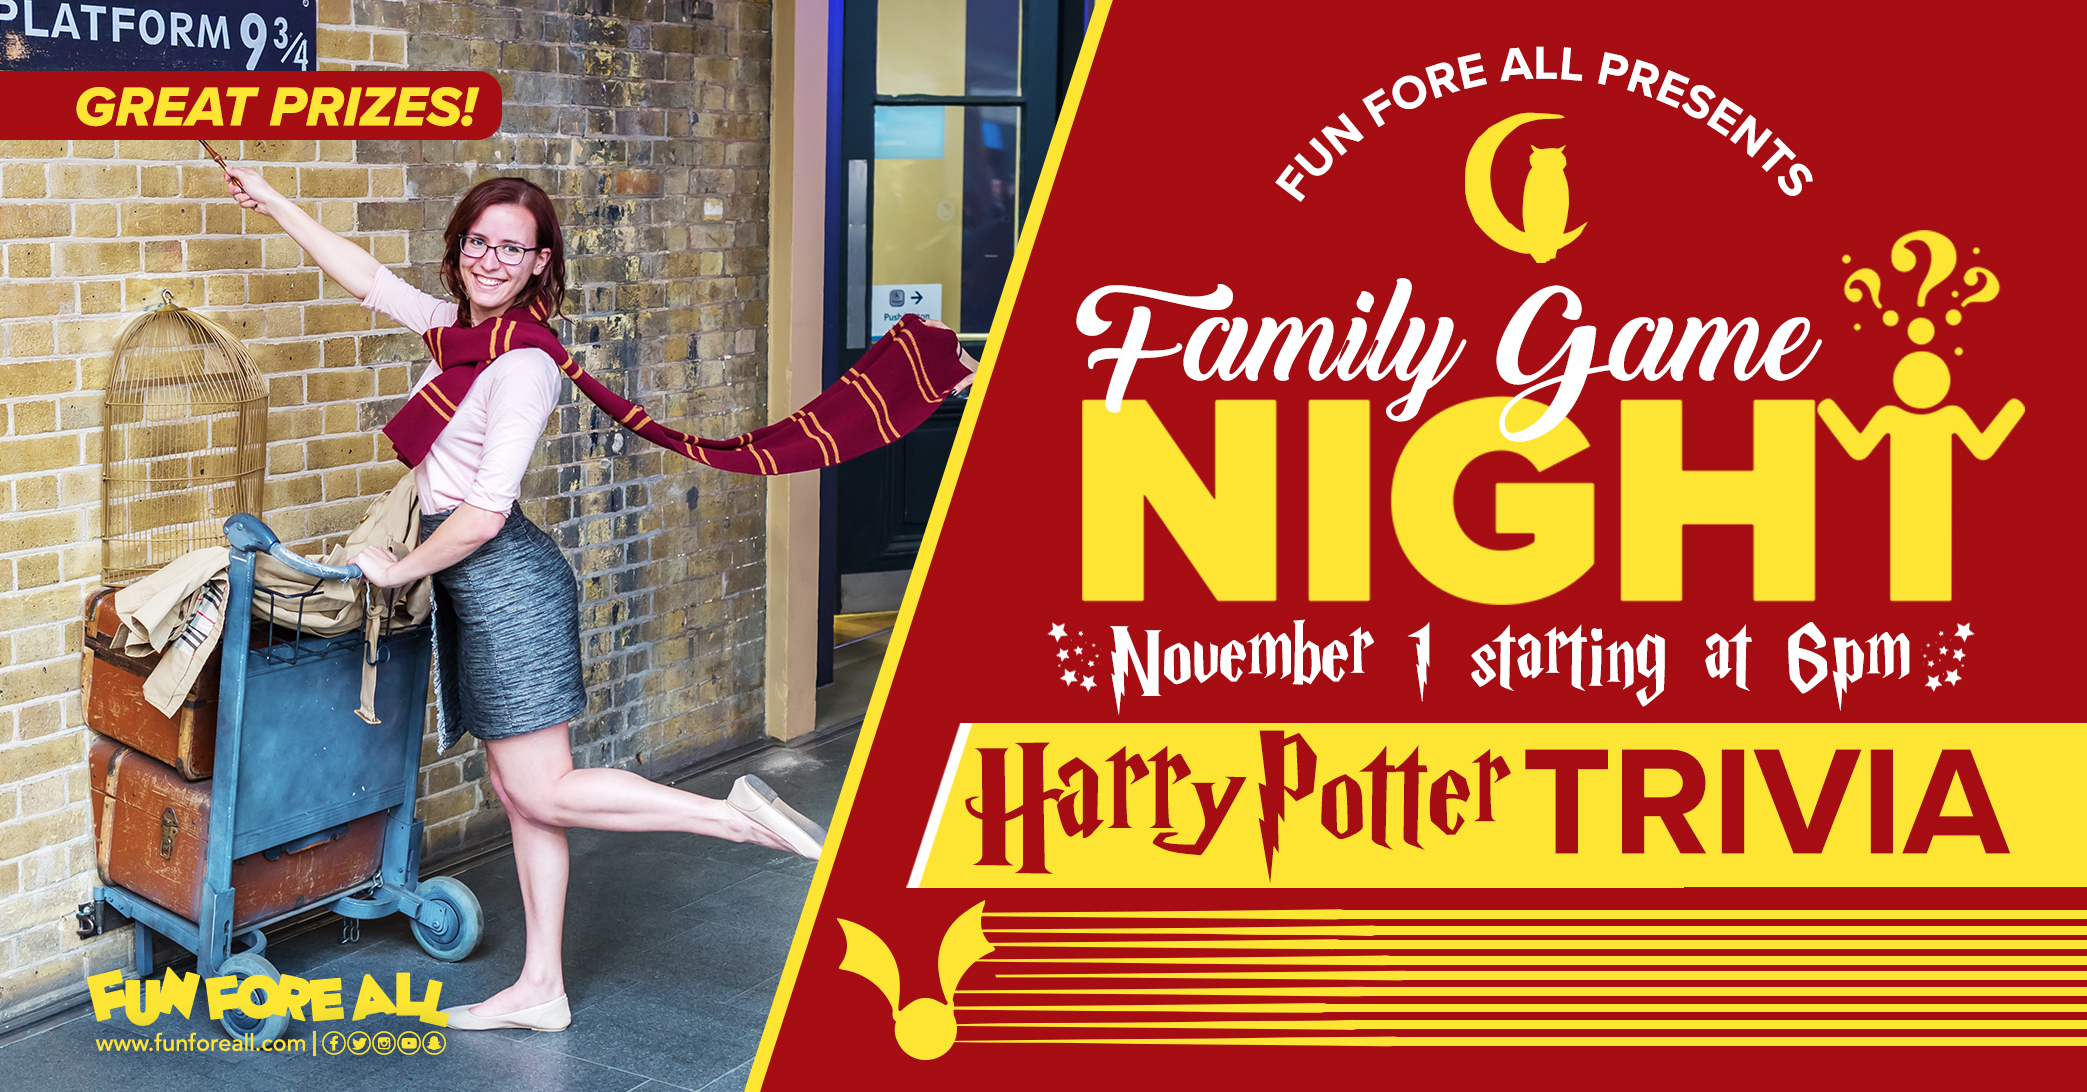 Facebook Invite (Family Game Night - Harry Potter Week) 2.jpg